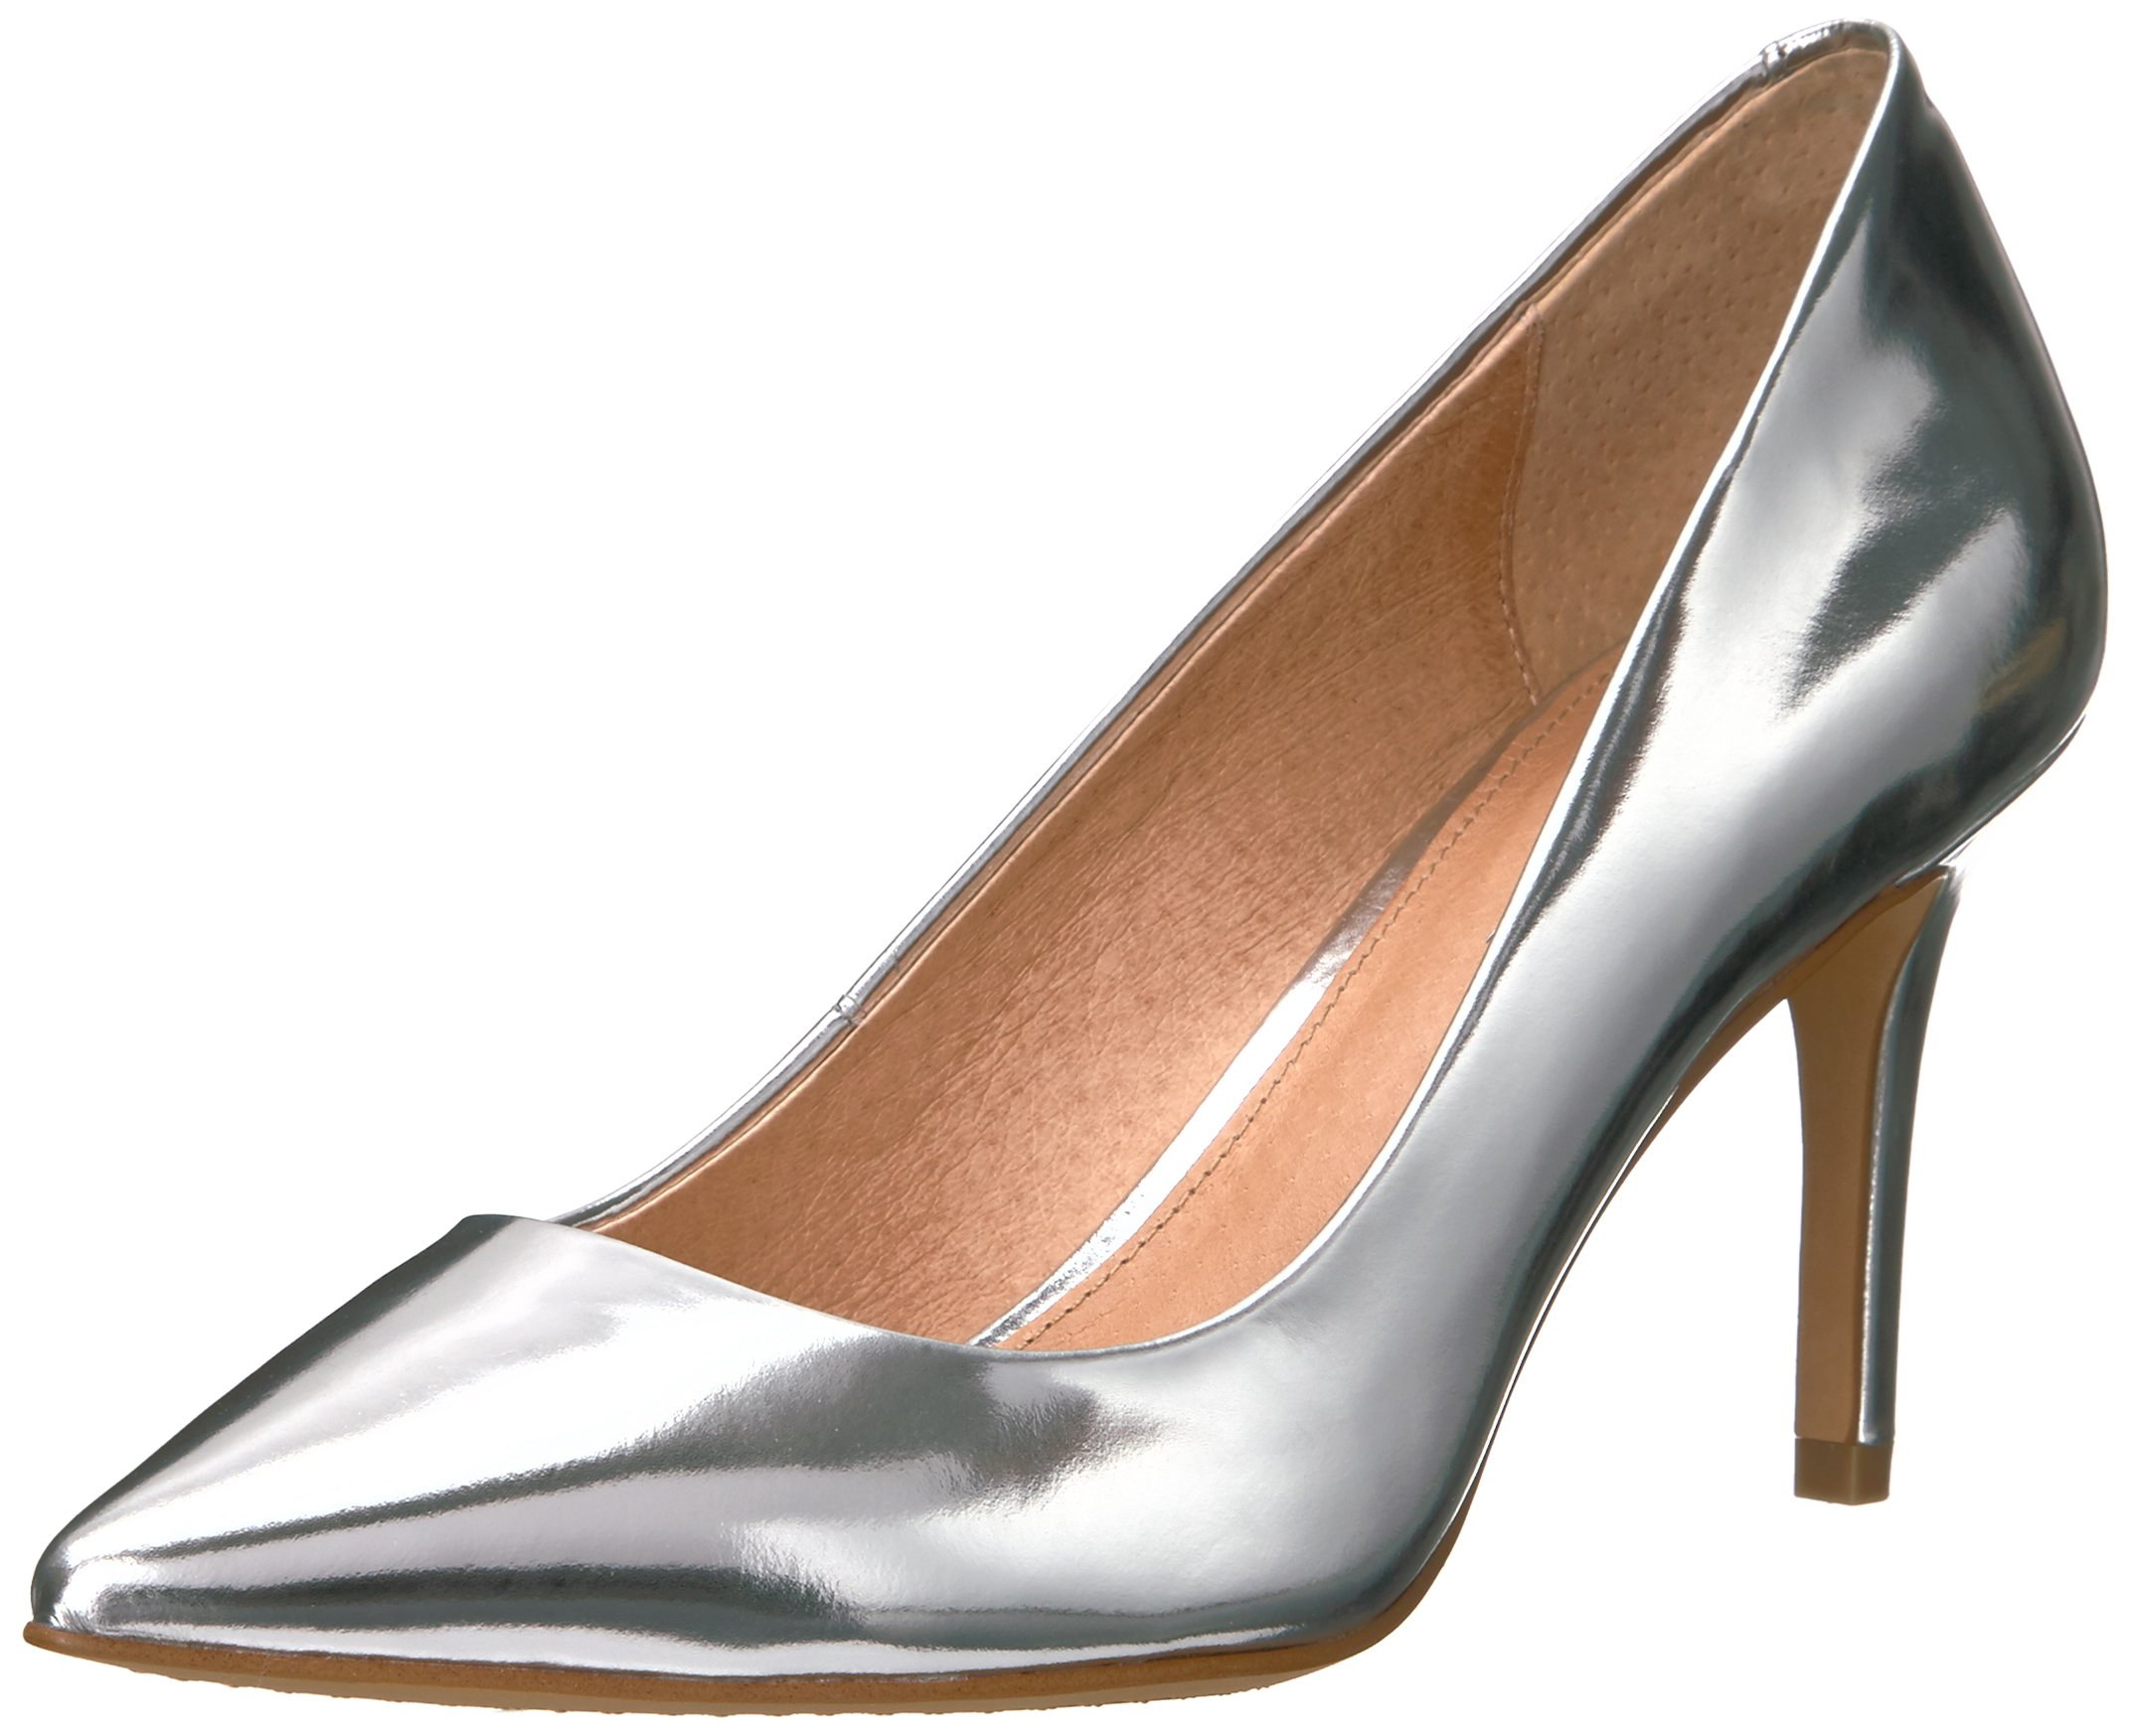 206 Collective Women's Mercer Dress Pump, Silver Mirror, 8 B US by 206 Collective (Image #1)